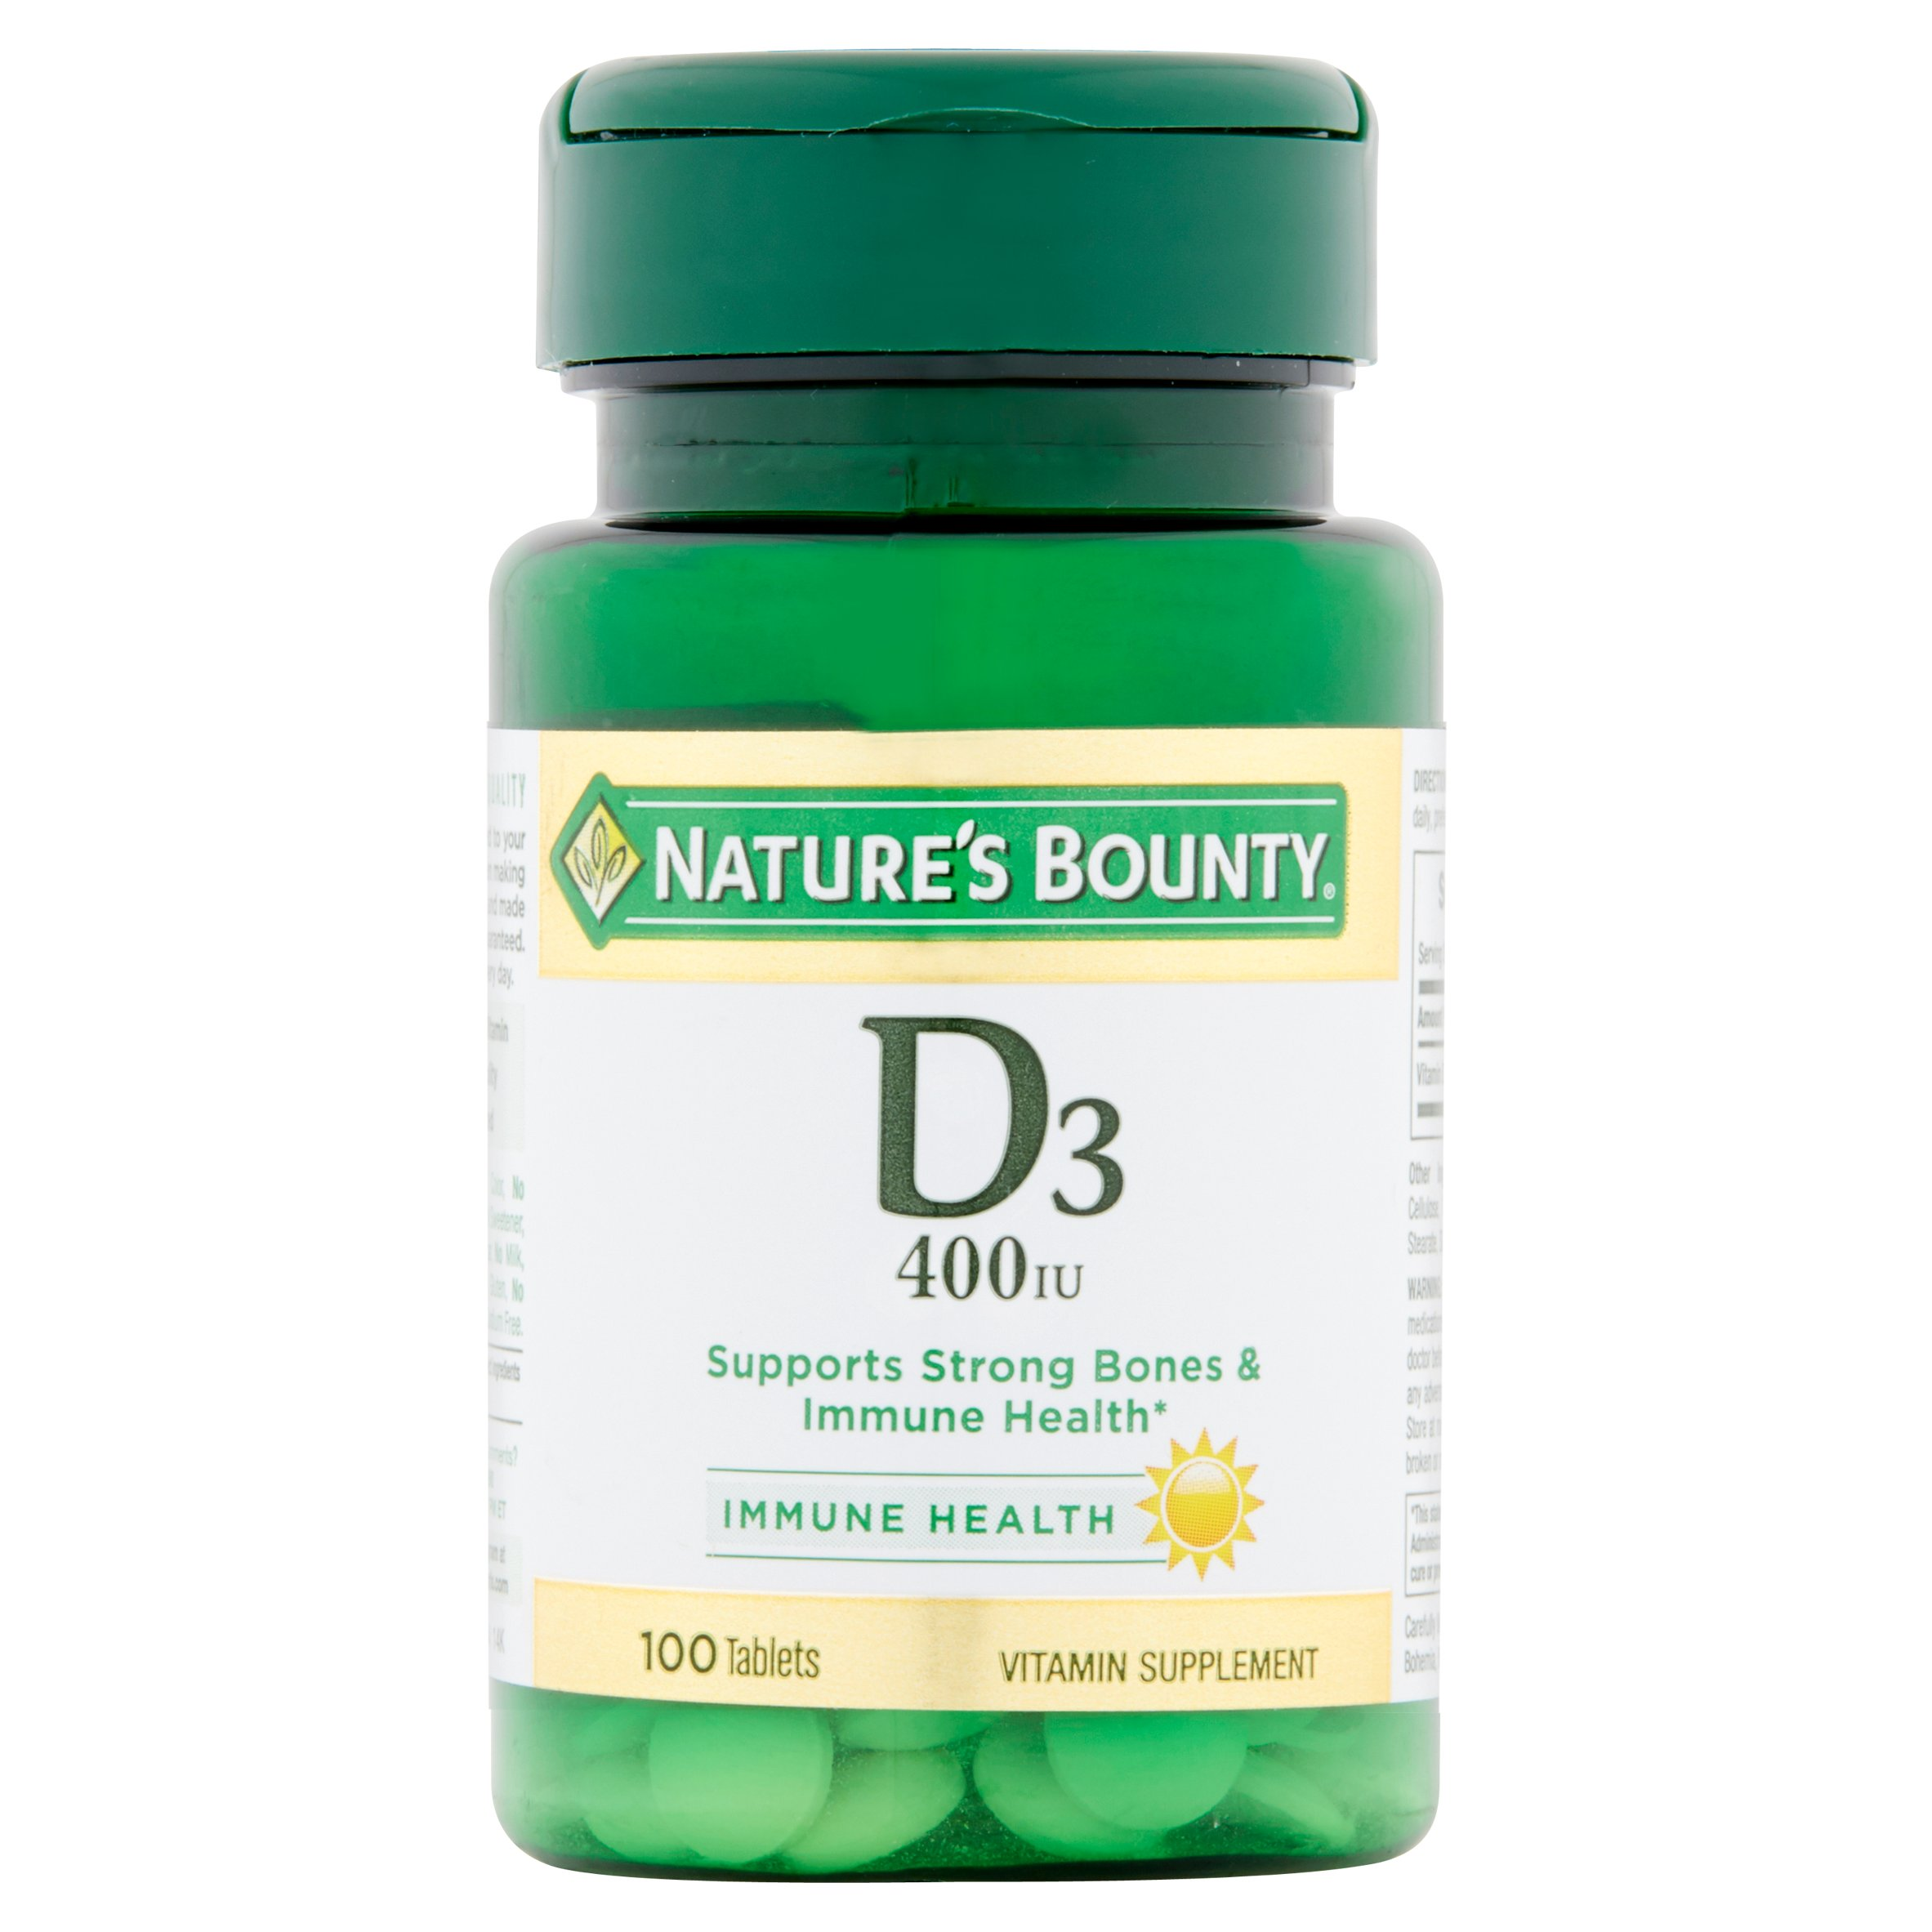 (2 Pack) Nature's Bounty Vitamin D3 Tablets, 400 IU, 100 Ct